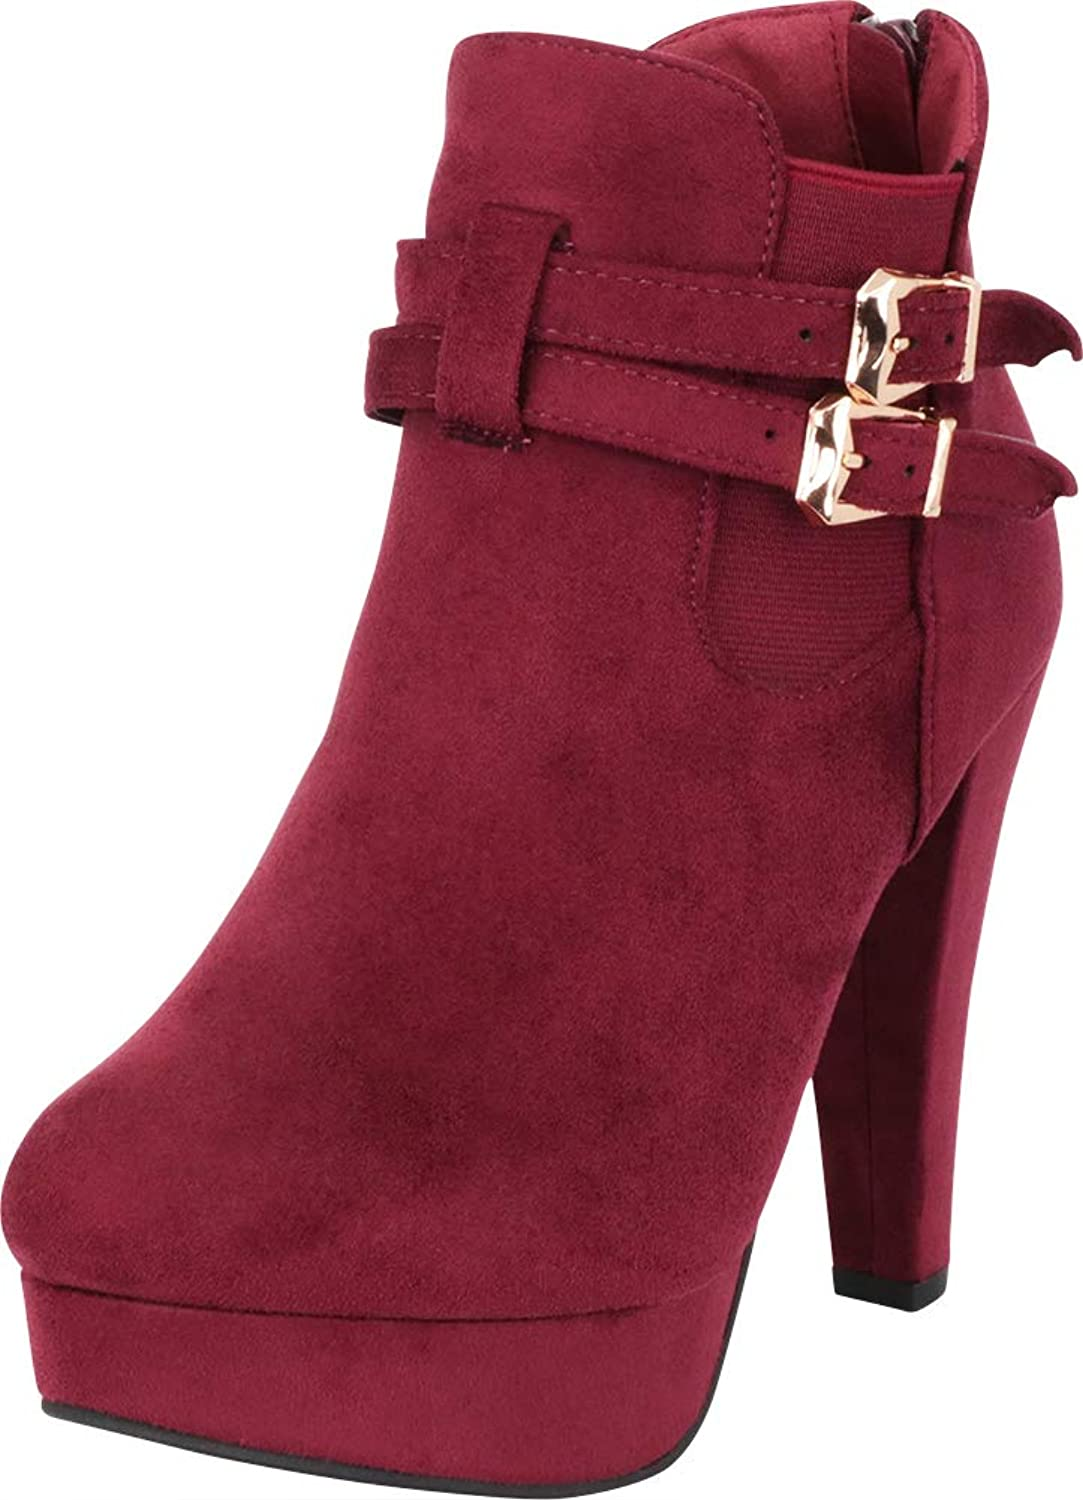 Cambridge Select Women's Strappy Buckle Stretch Chunky Platform High Heel Ankle Bootie